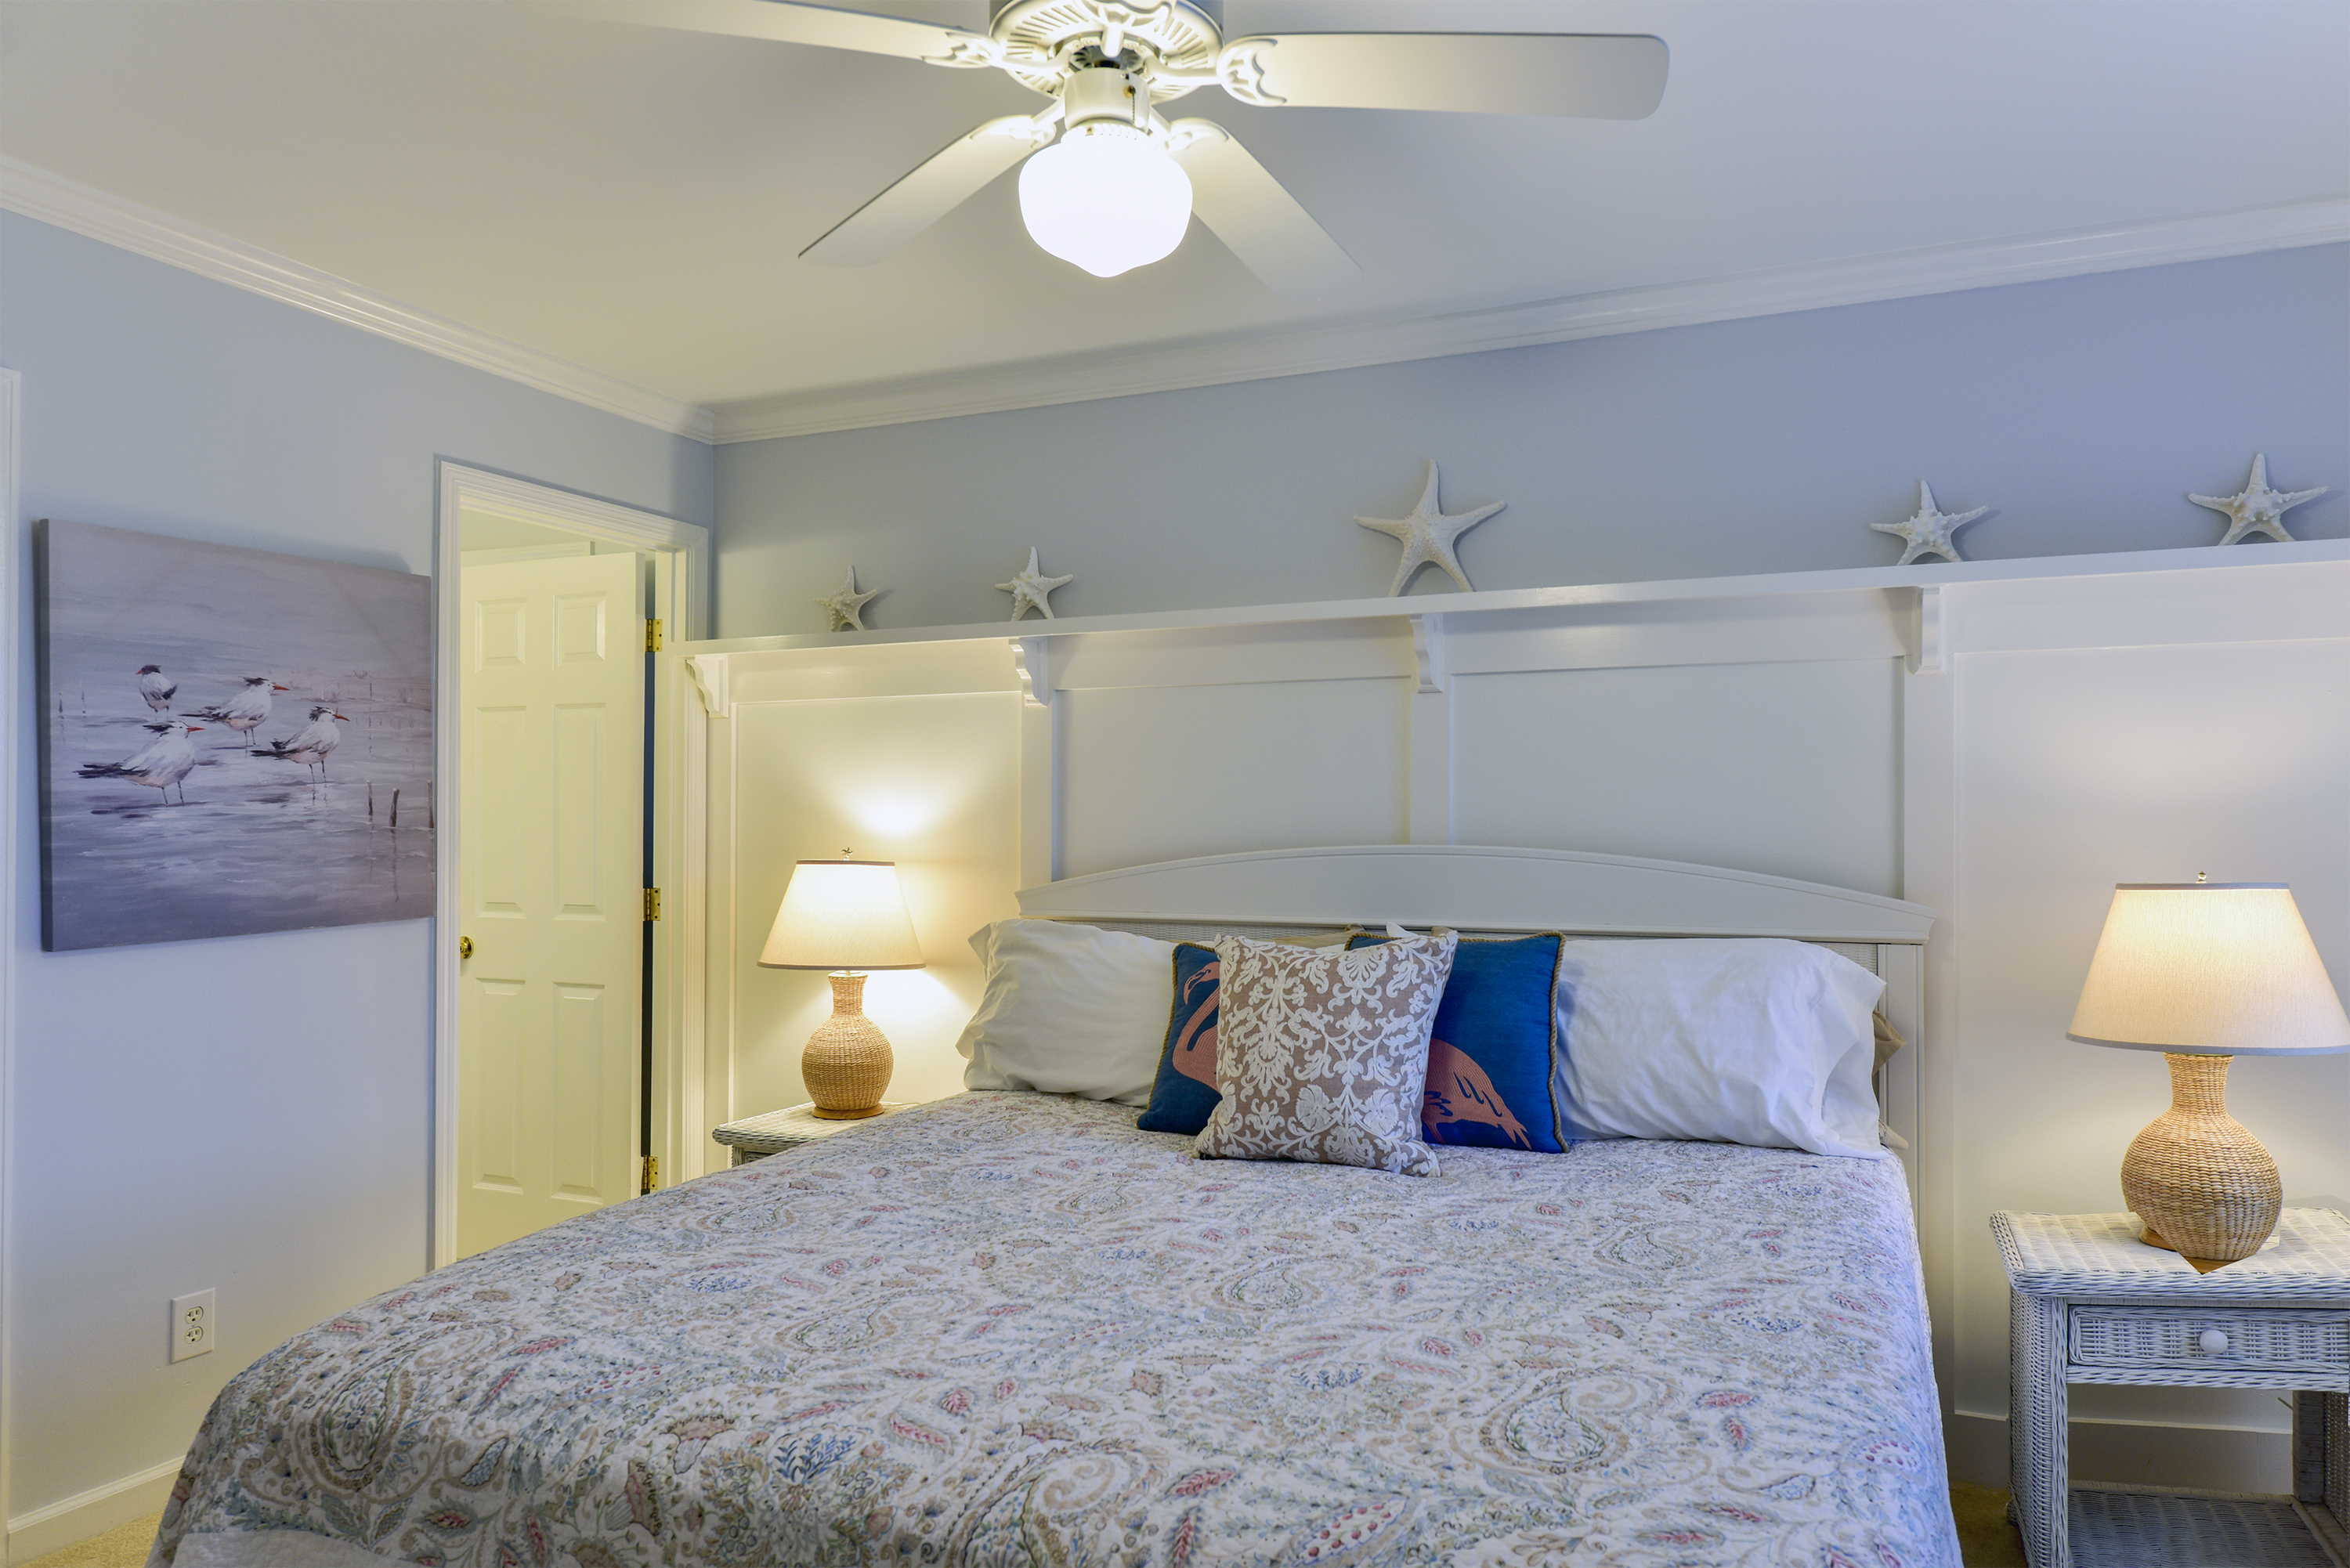 Enjoy the king size bed and HDTV.